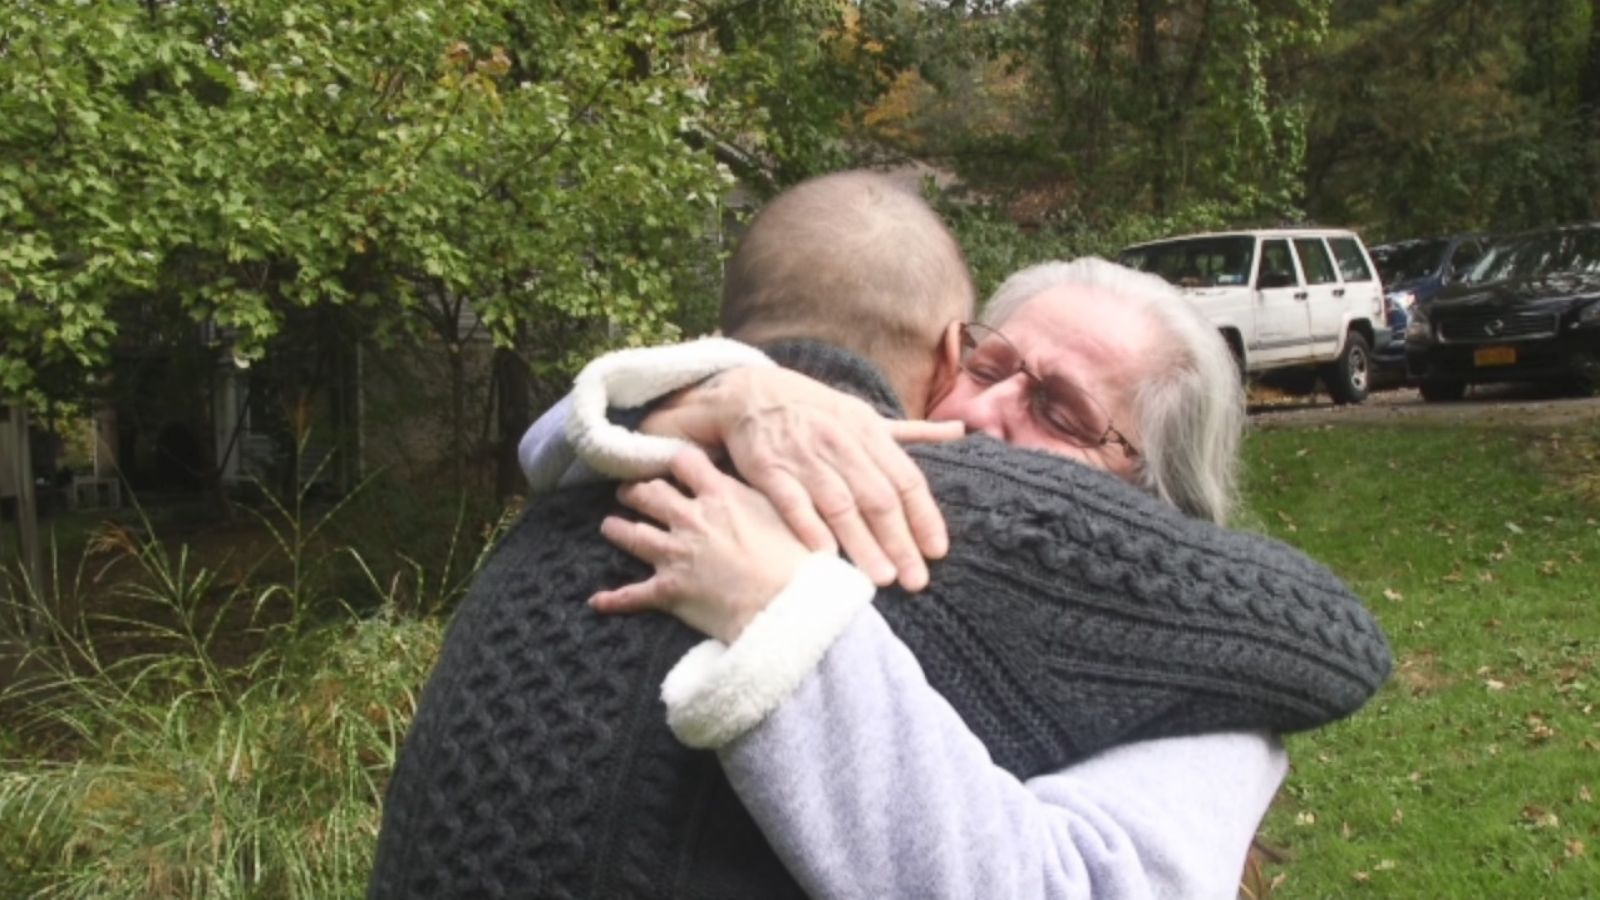 Man with leukemia meets birth mother for the first time in